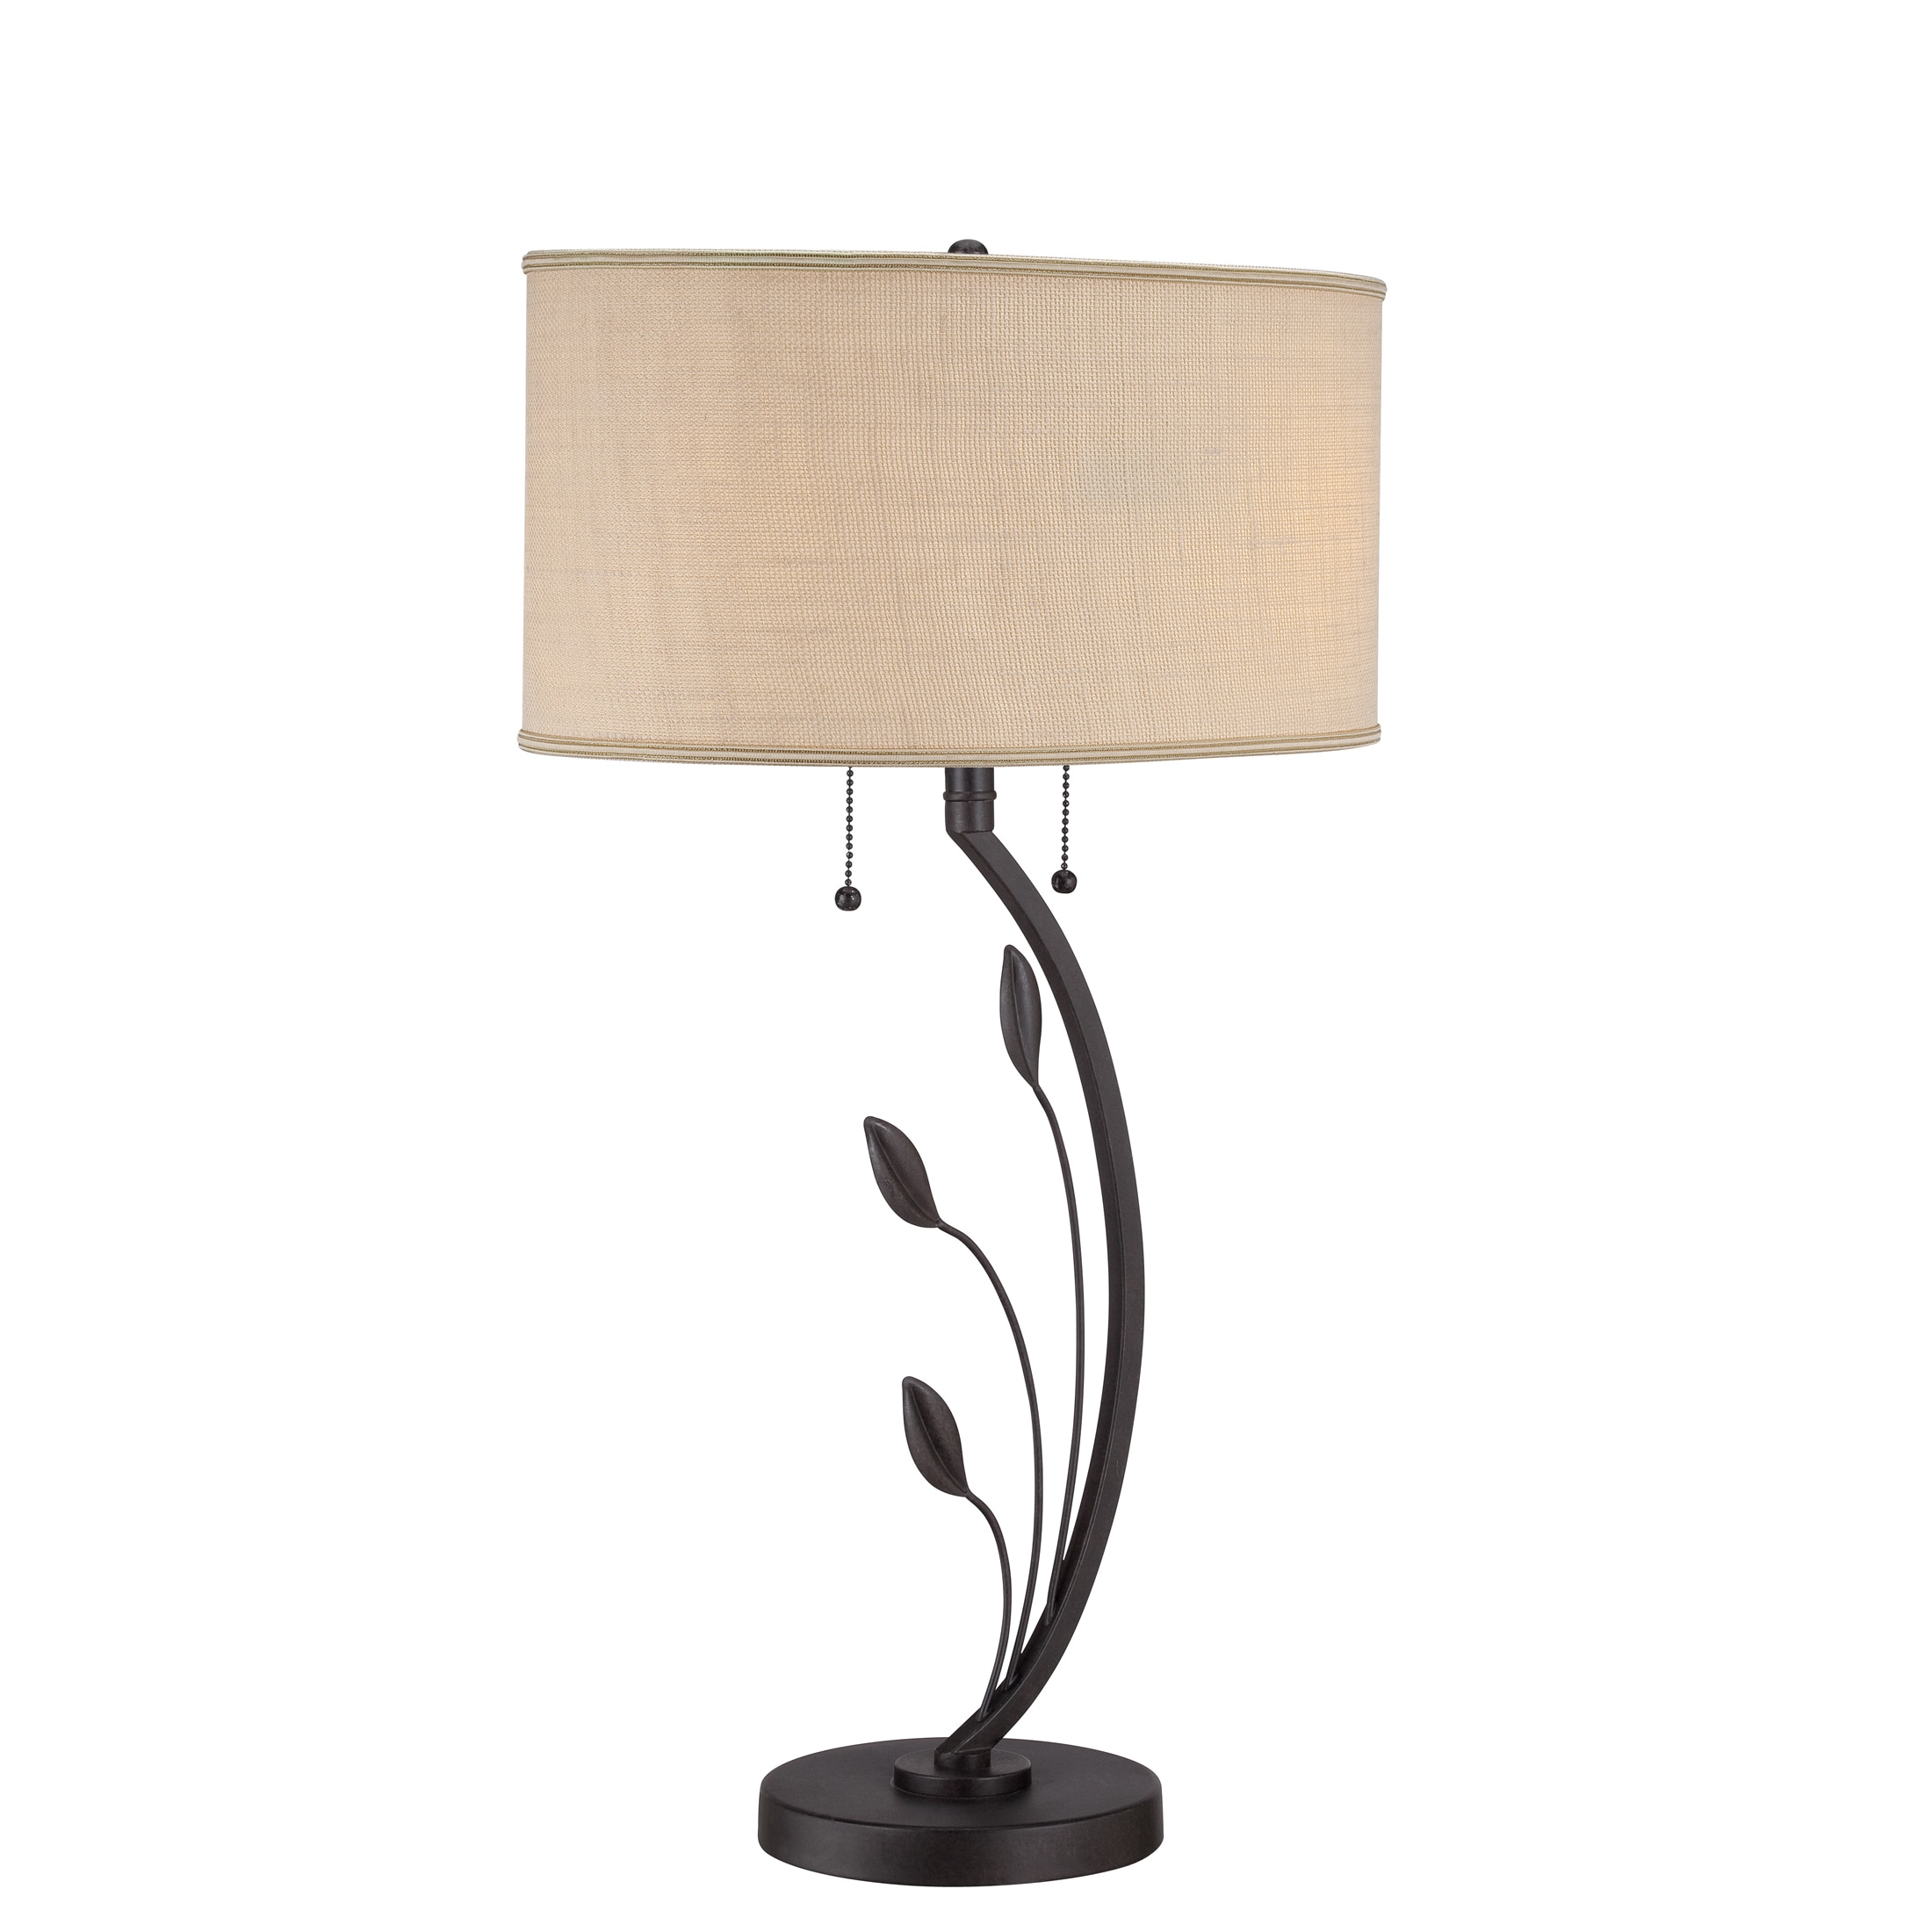 Quoizel Lively 2-light Brown Textured Table Lamp at Sears.com